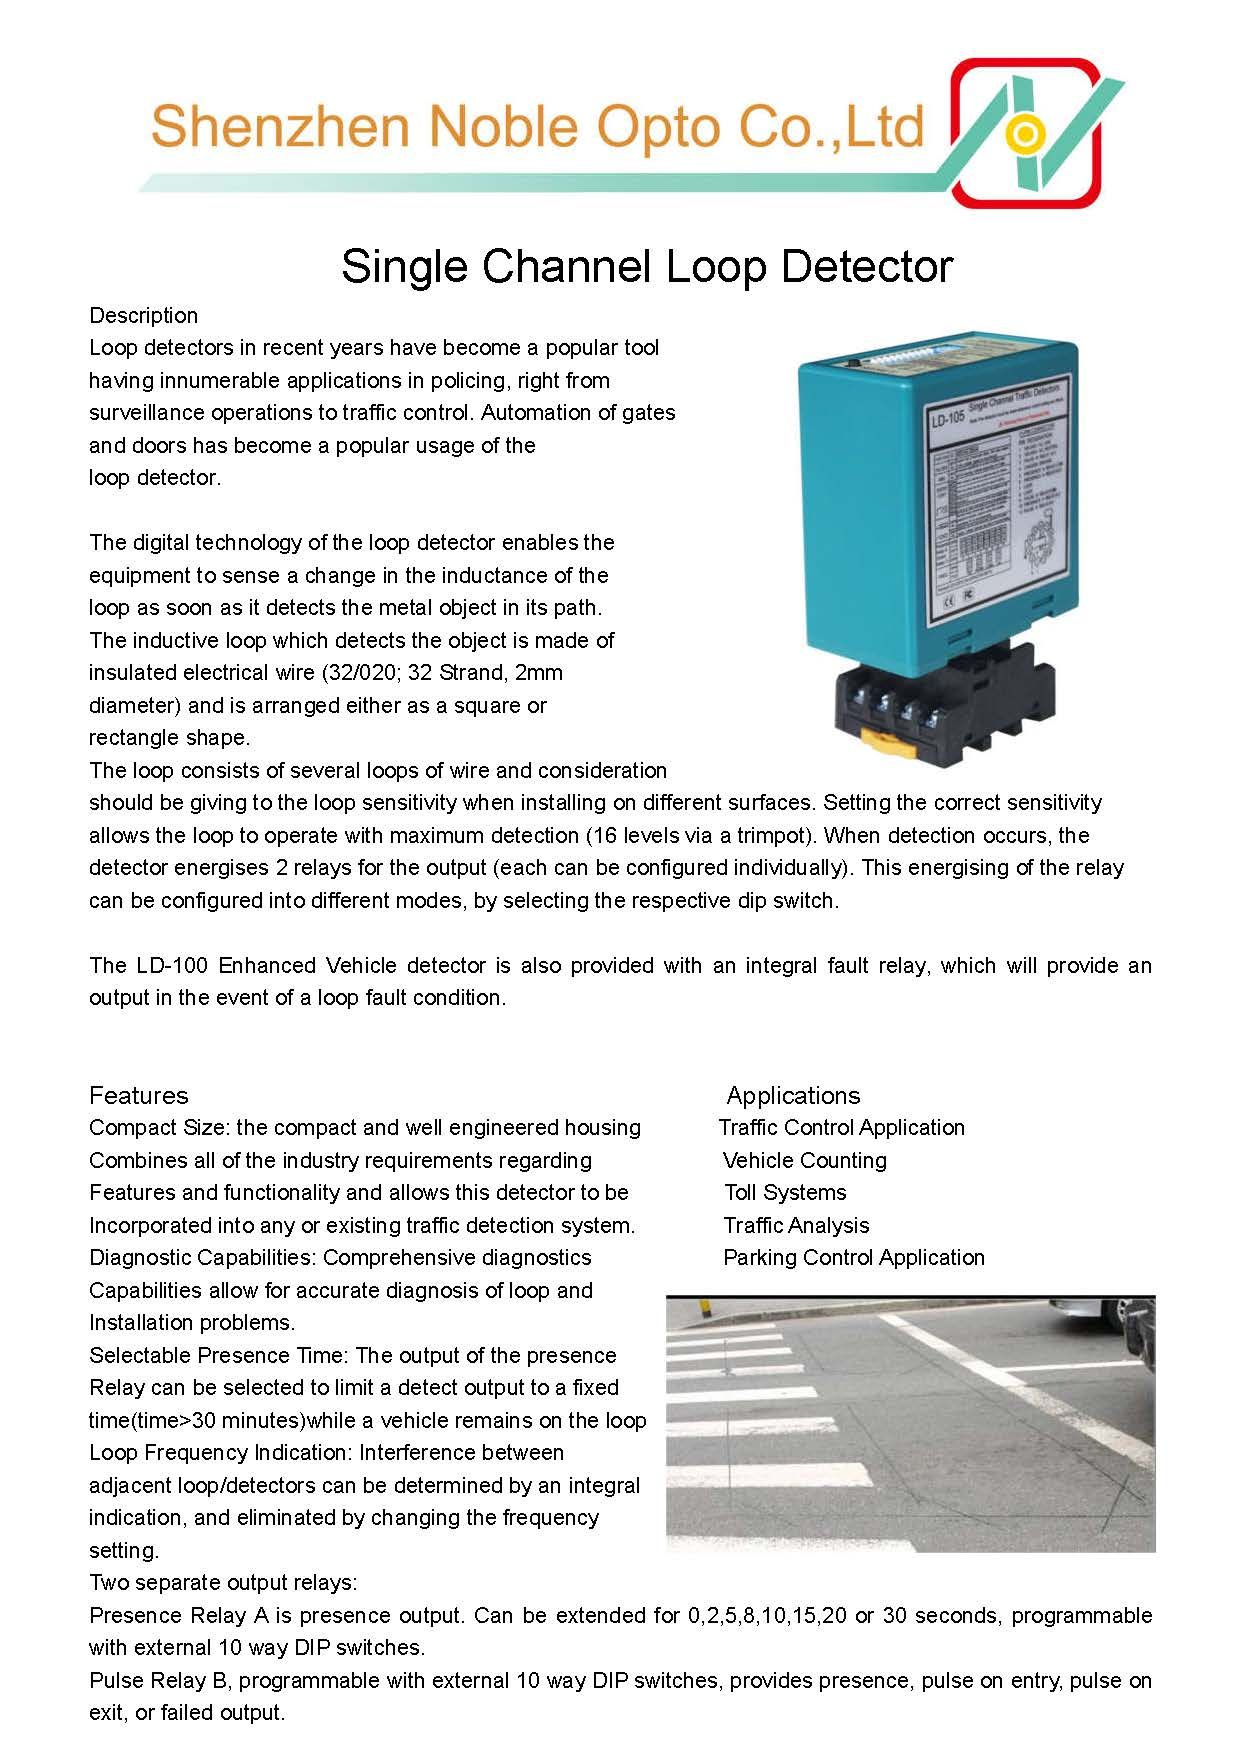 This Is Noble High Quality Loop Detector For Parking Bollards Autogate Control Our Single Way Sensors Working Voltage Detector Traffic Signal Led Street Lights